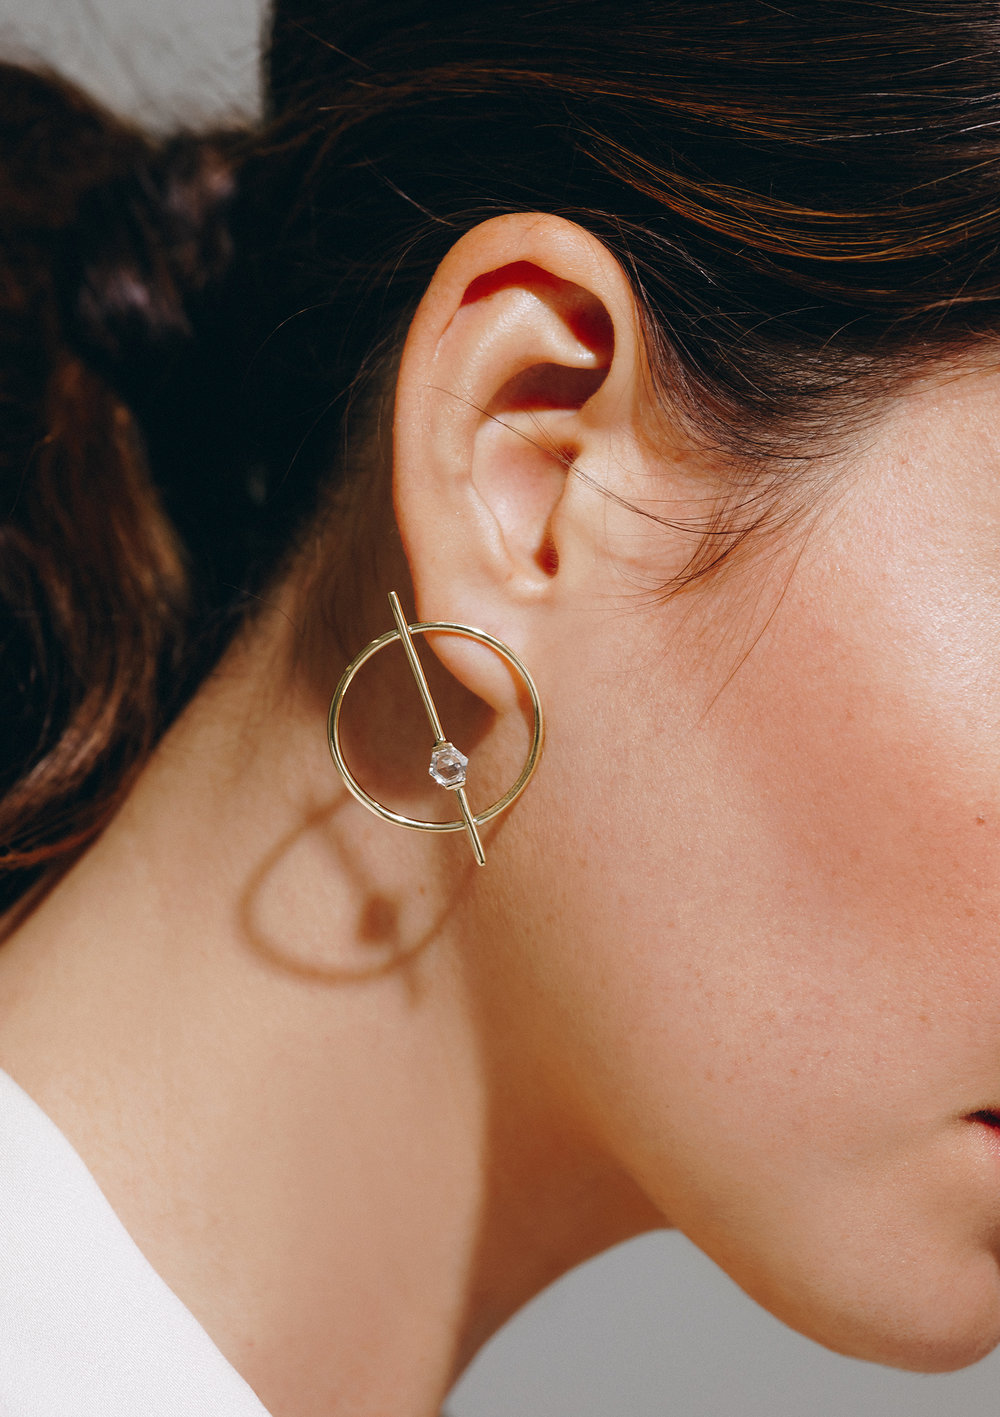 PureEarthxTalianaVargasxPiliRestrepo_AquiloEarrings.jpg